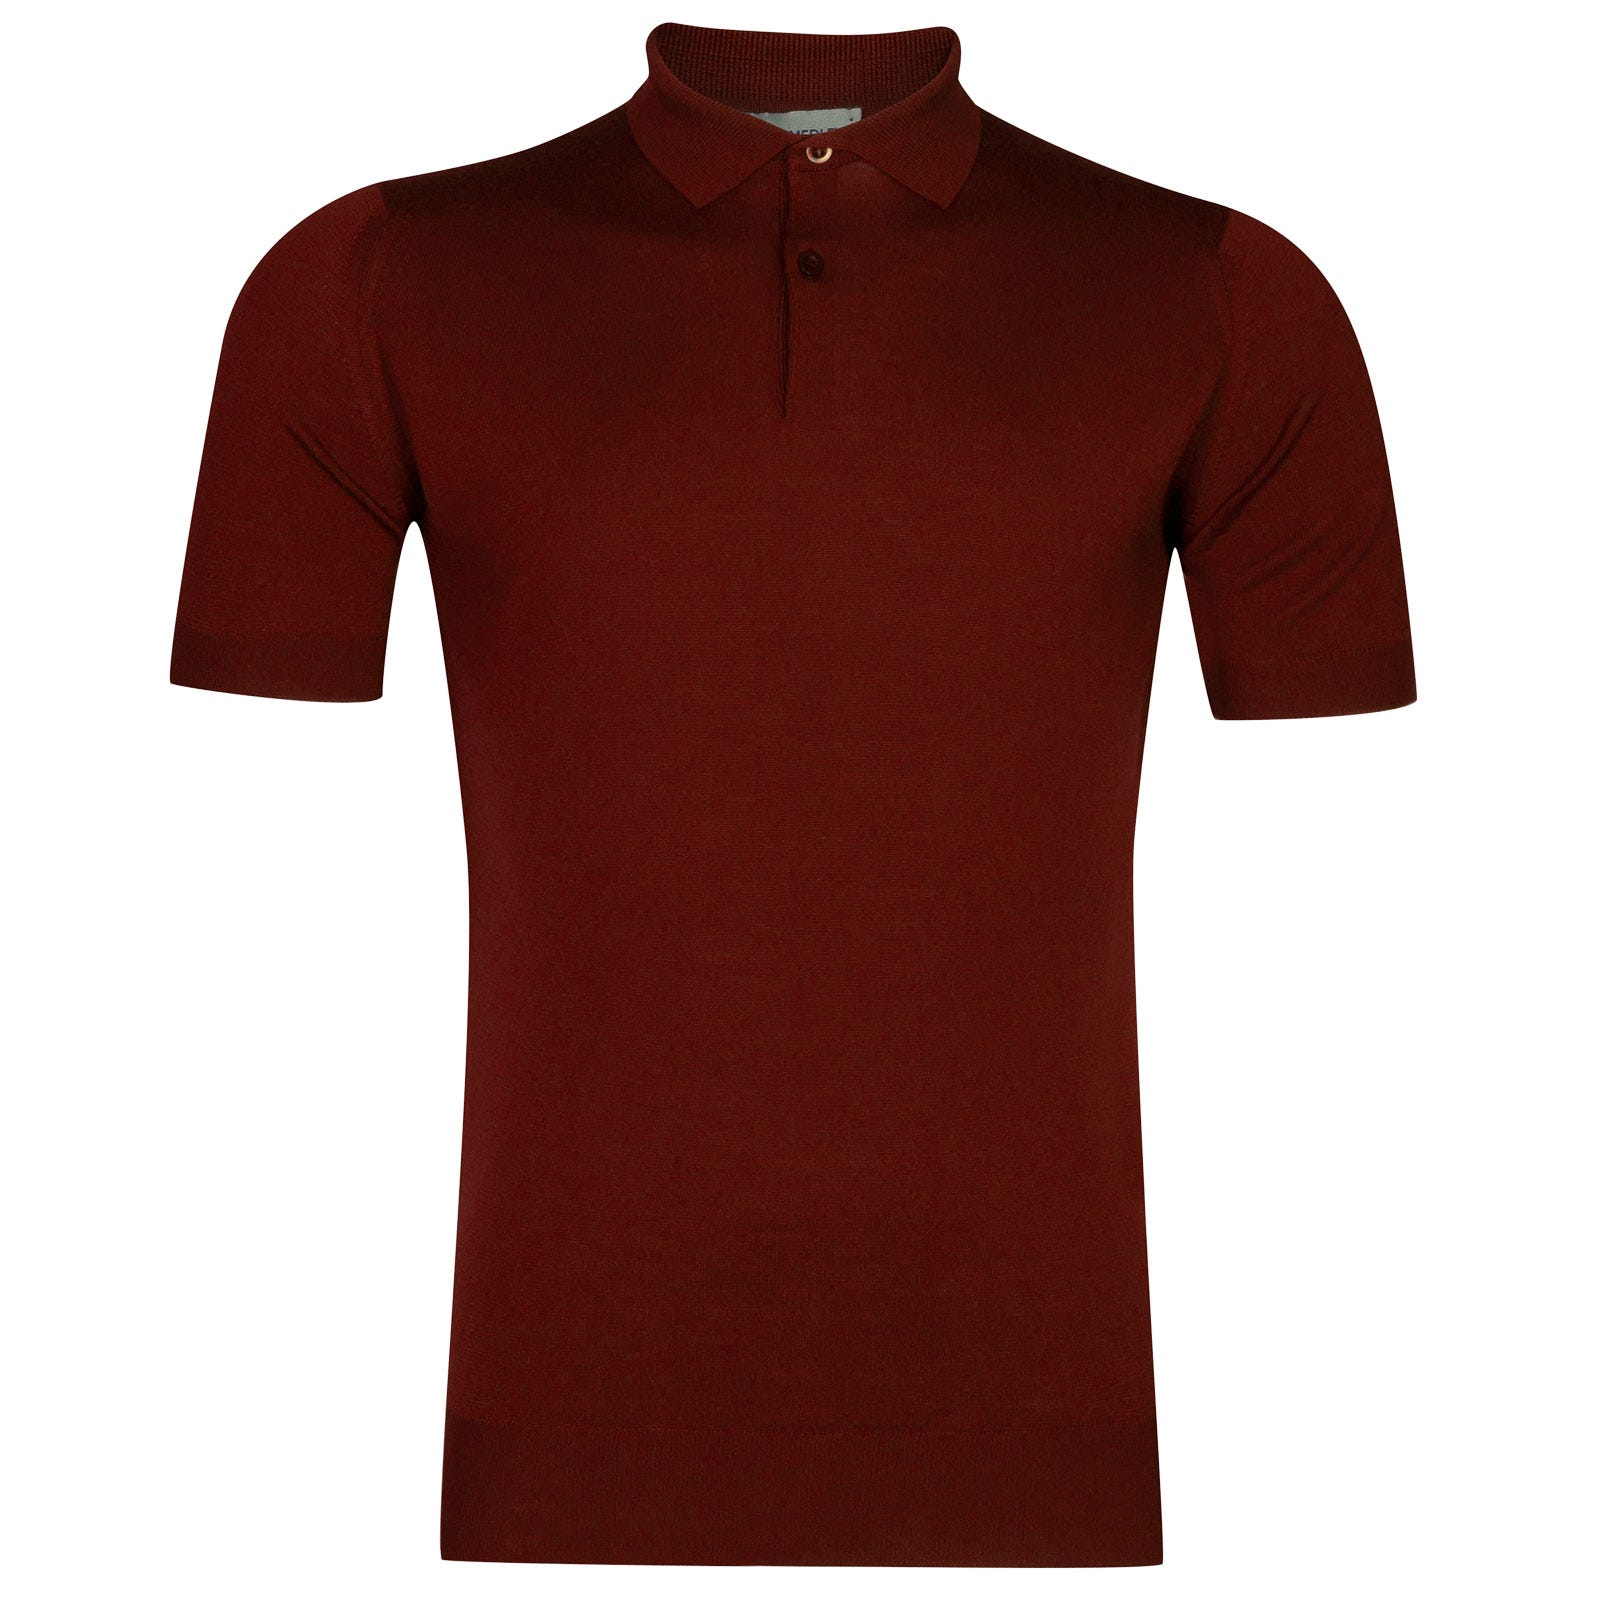 John Smedley payton Merino Wool Shirt in Crimson Forest-L